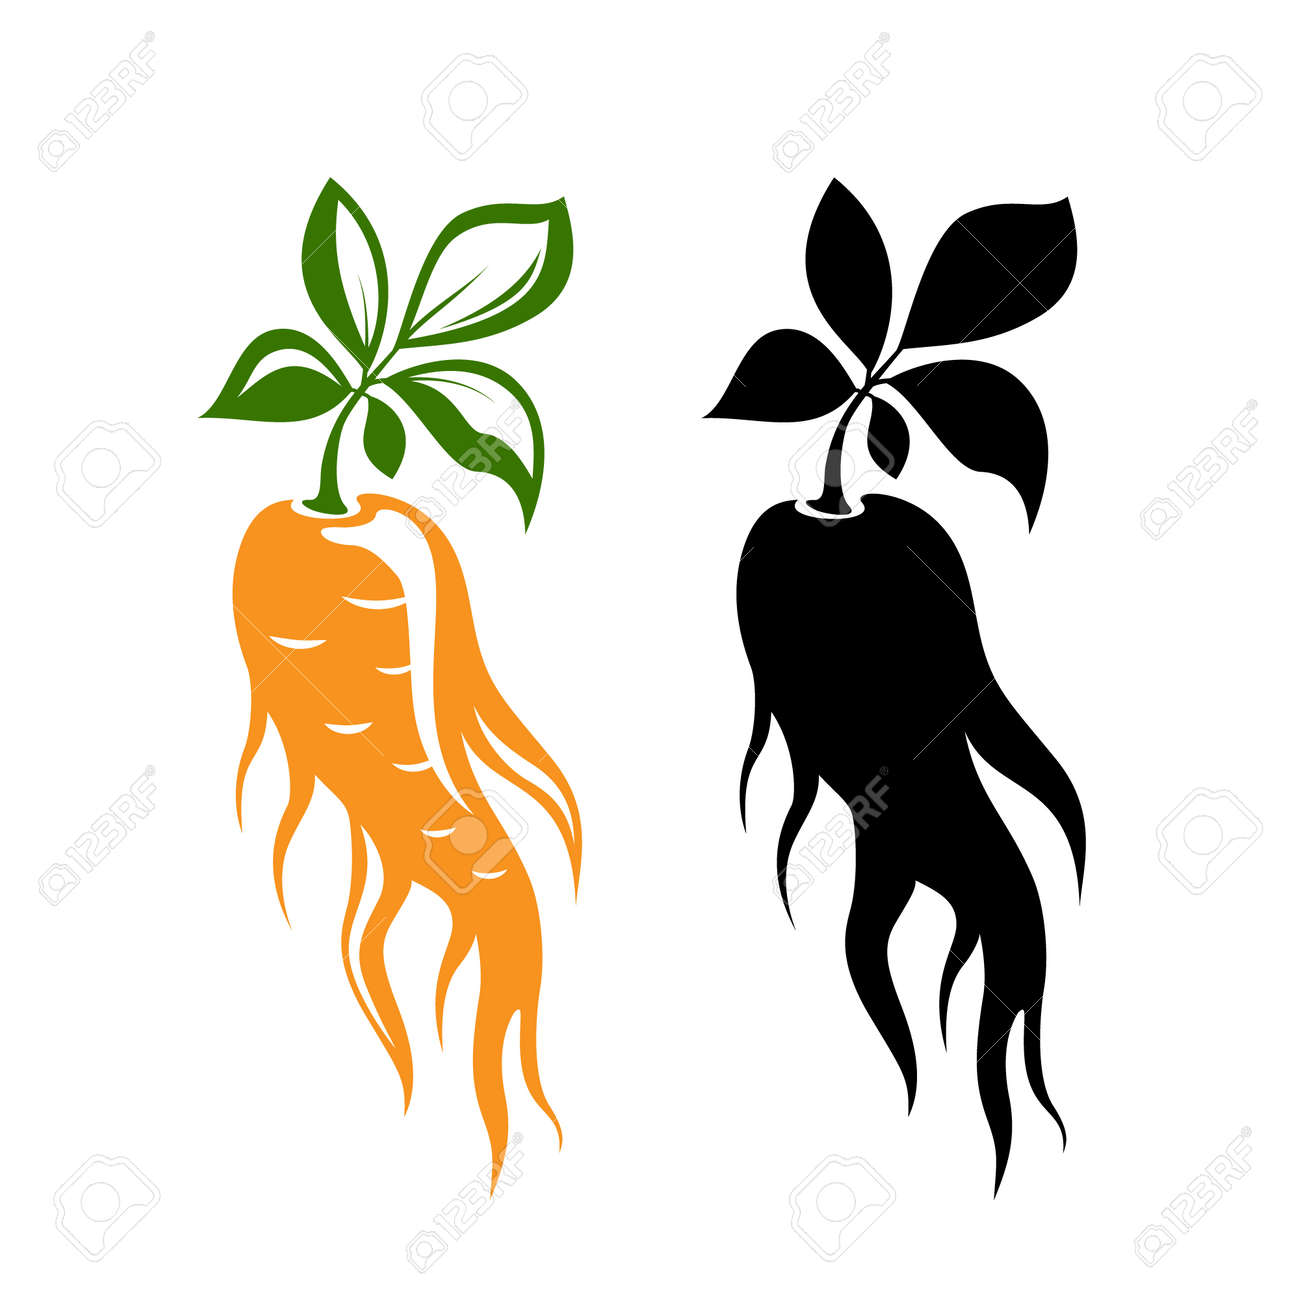 Red ginseng emblem. Traditional chinese golden root. Isolated vector illustration. Colorful and black silhouettes. - 158145337